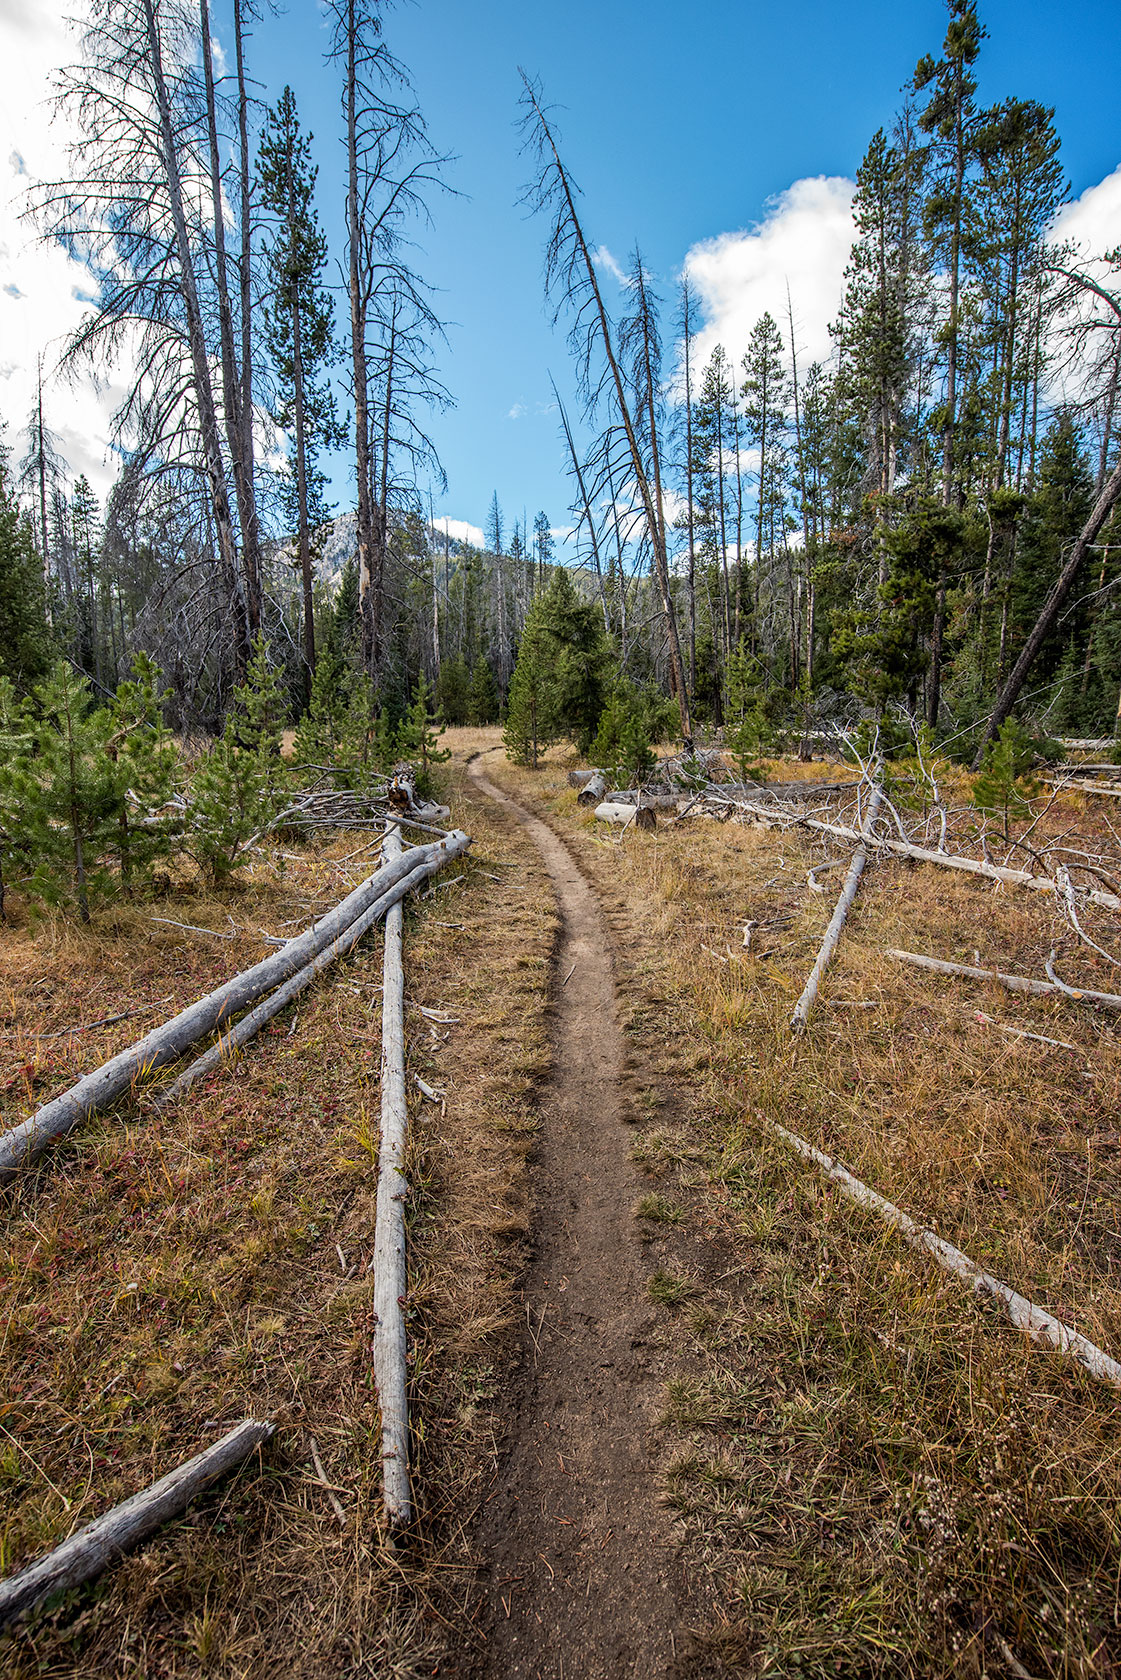 austin-trigg-patagonia-sawtooth-hiking-advenure-wilderness-forest-idaho-outside-lifestyle-day-fall-weather-mountains-trail.jpg